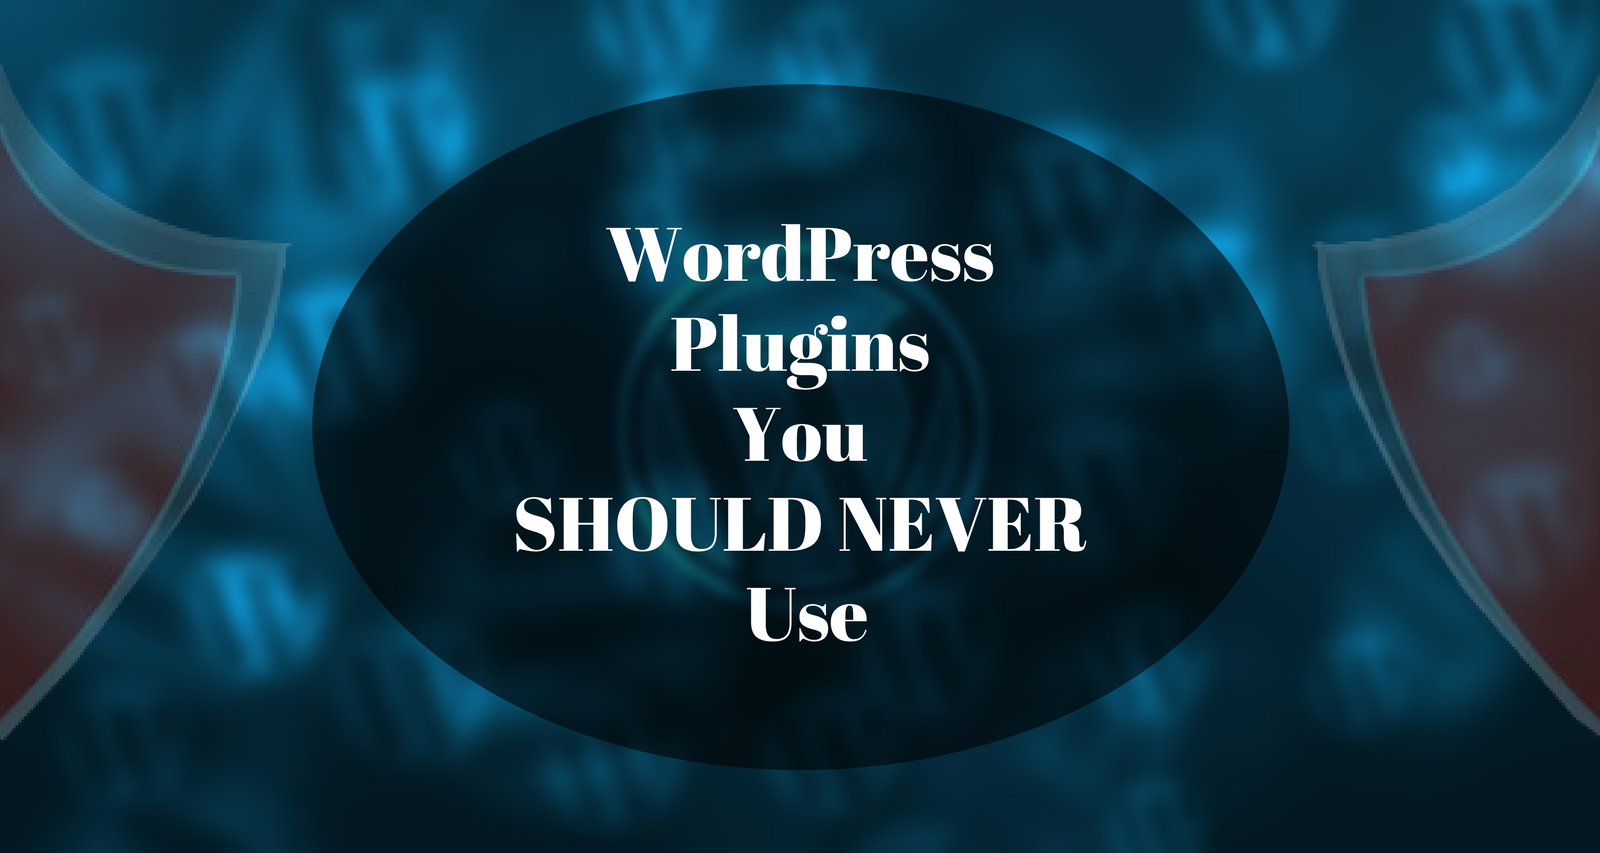 WordPress Plugins You SHOULD NEVER Use